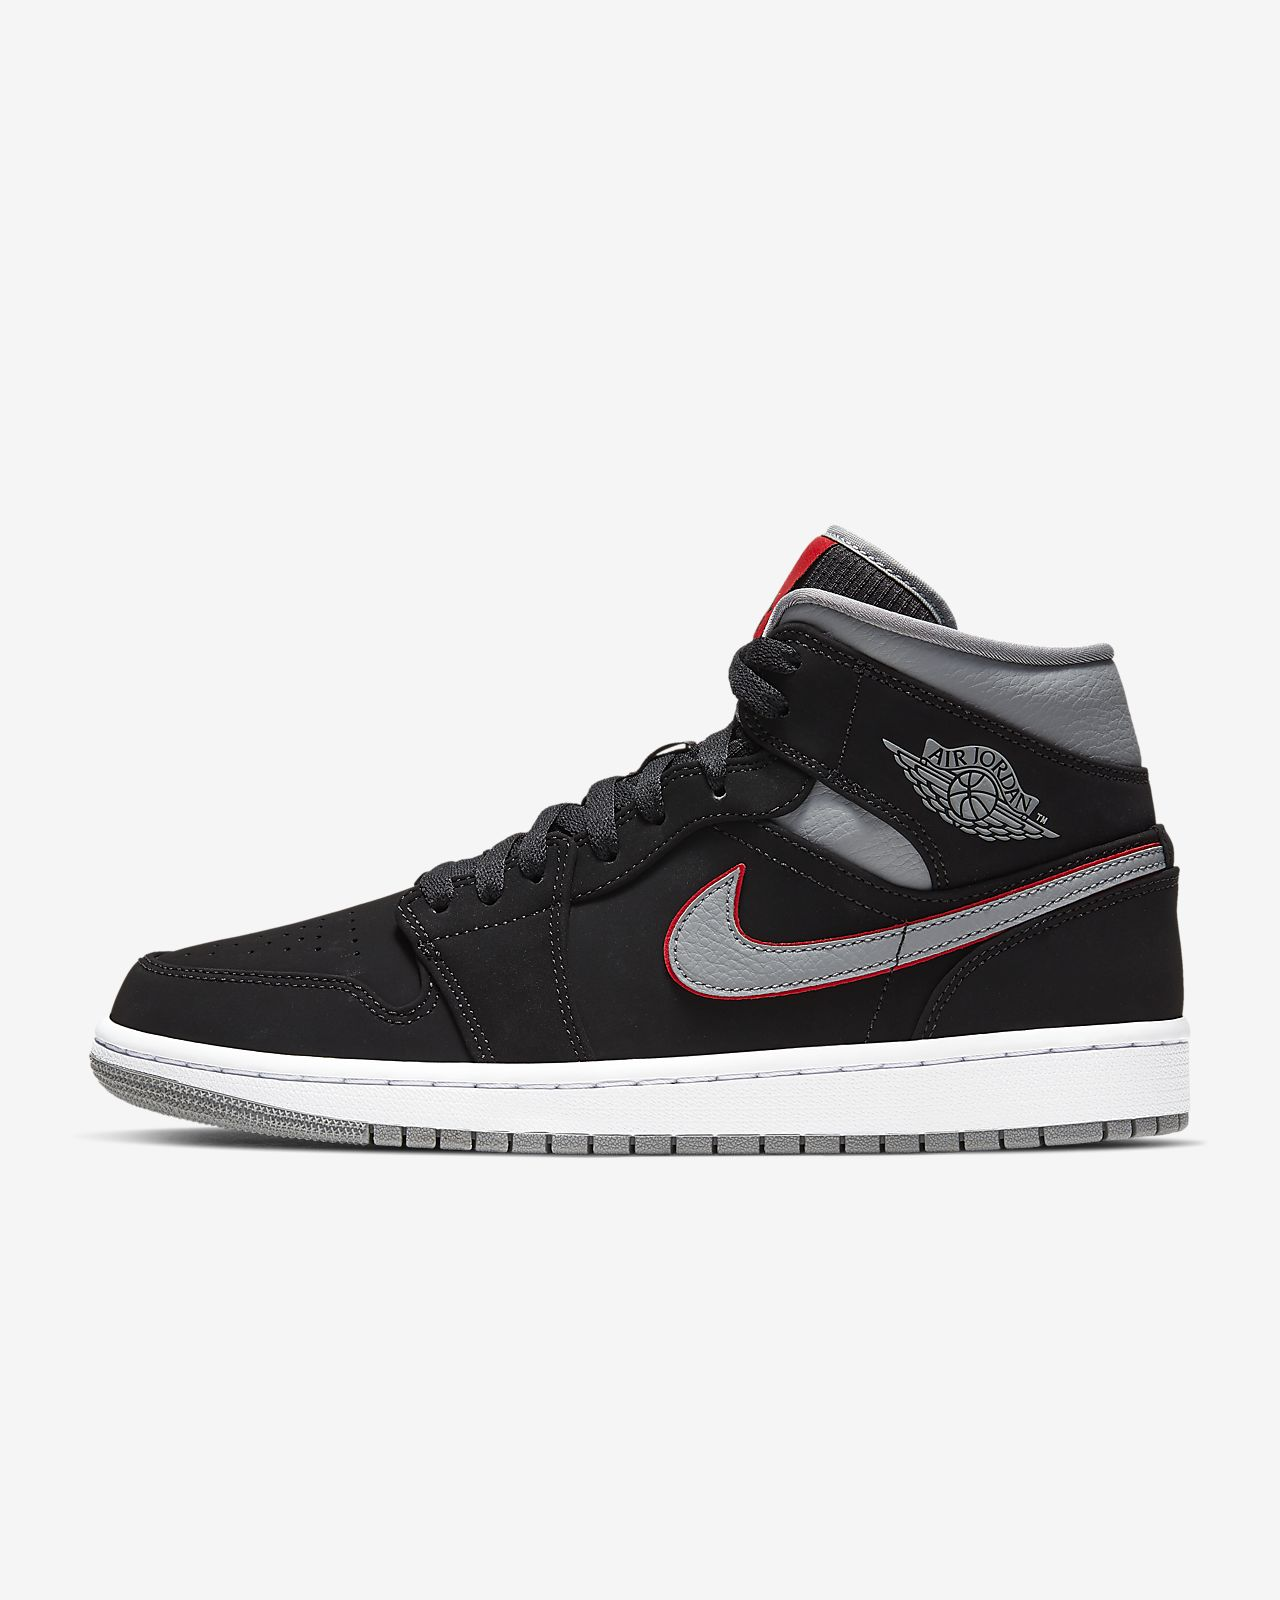 d95037b0d634 Air Jordan 1 Mid Men s Shoe. Nike.com GB